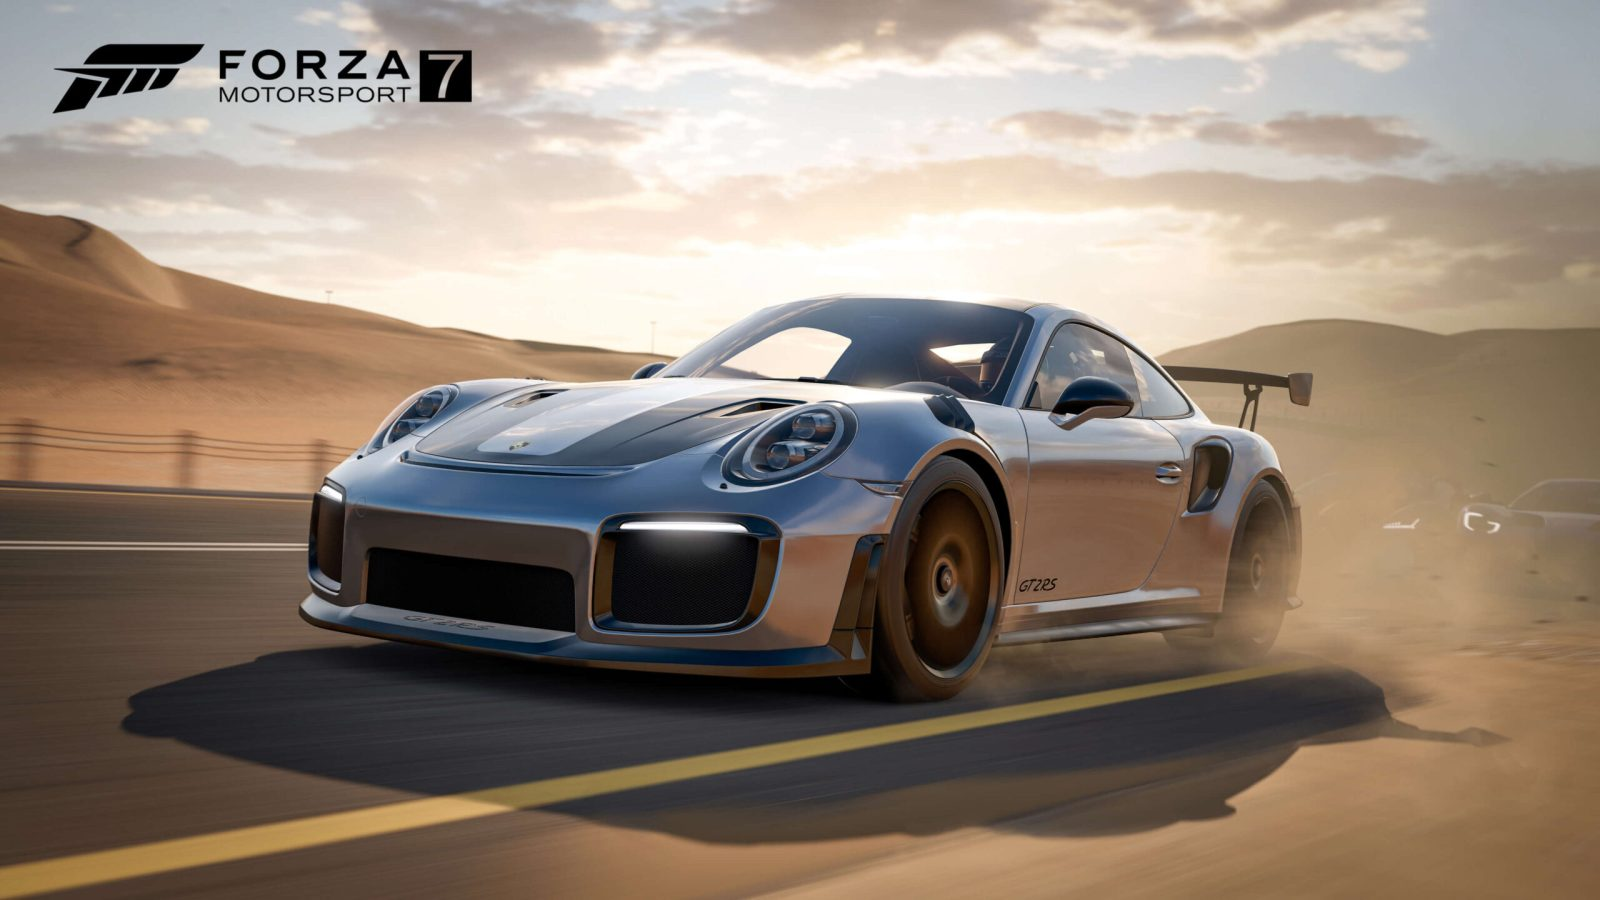 Forza Motorsport 7 Now Available for Xbox Game Pass Members